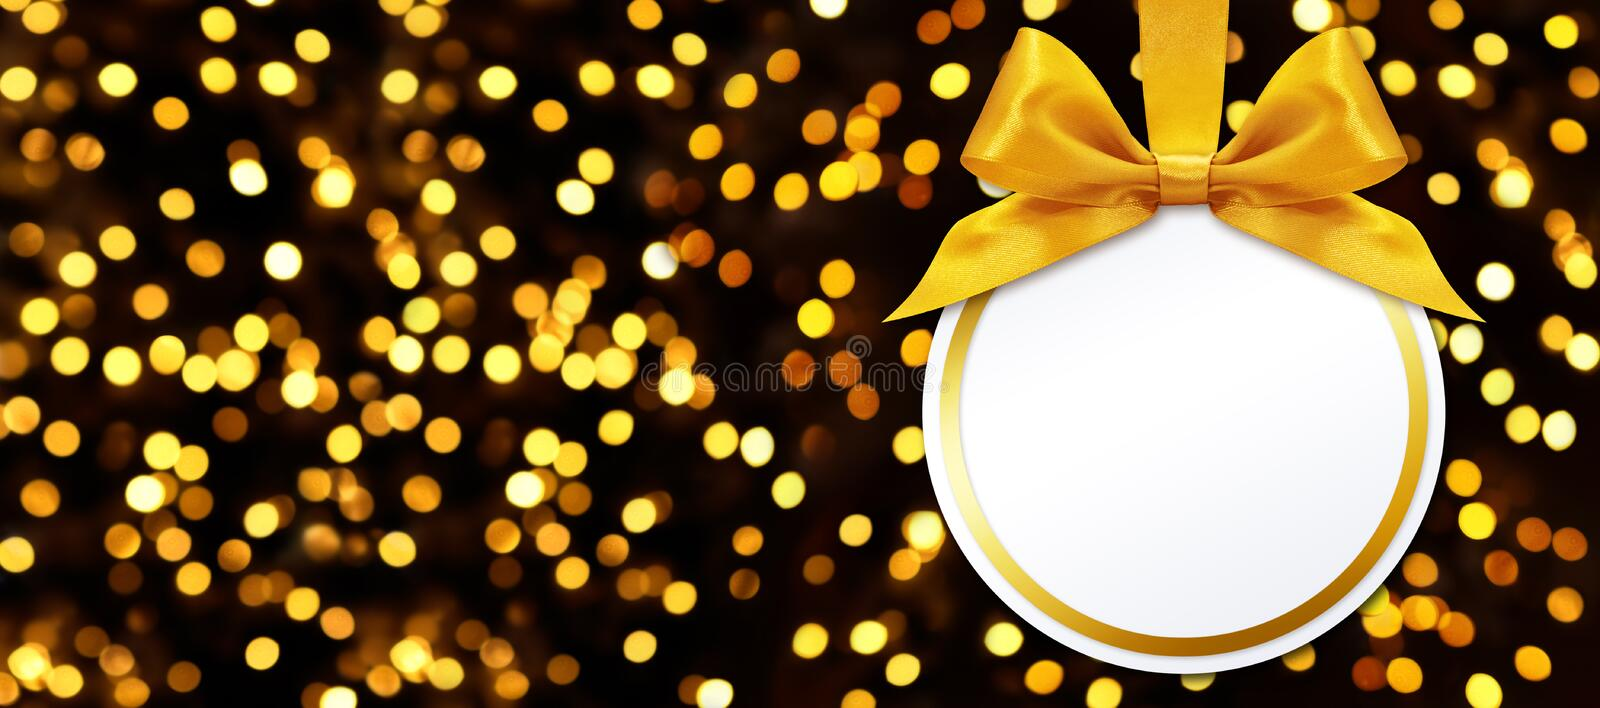 Christmas ball with bow hanging on lights background. Christmas ball with bow hanging on lights glitter background royalty free stock image